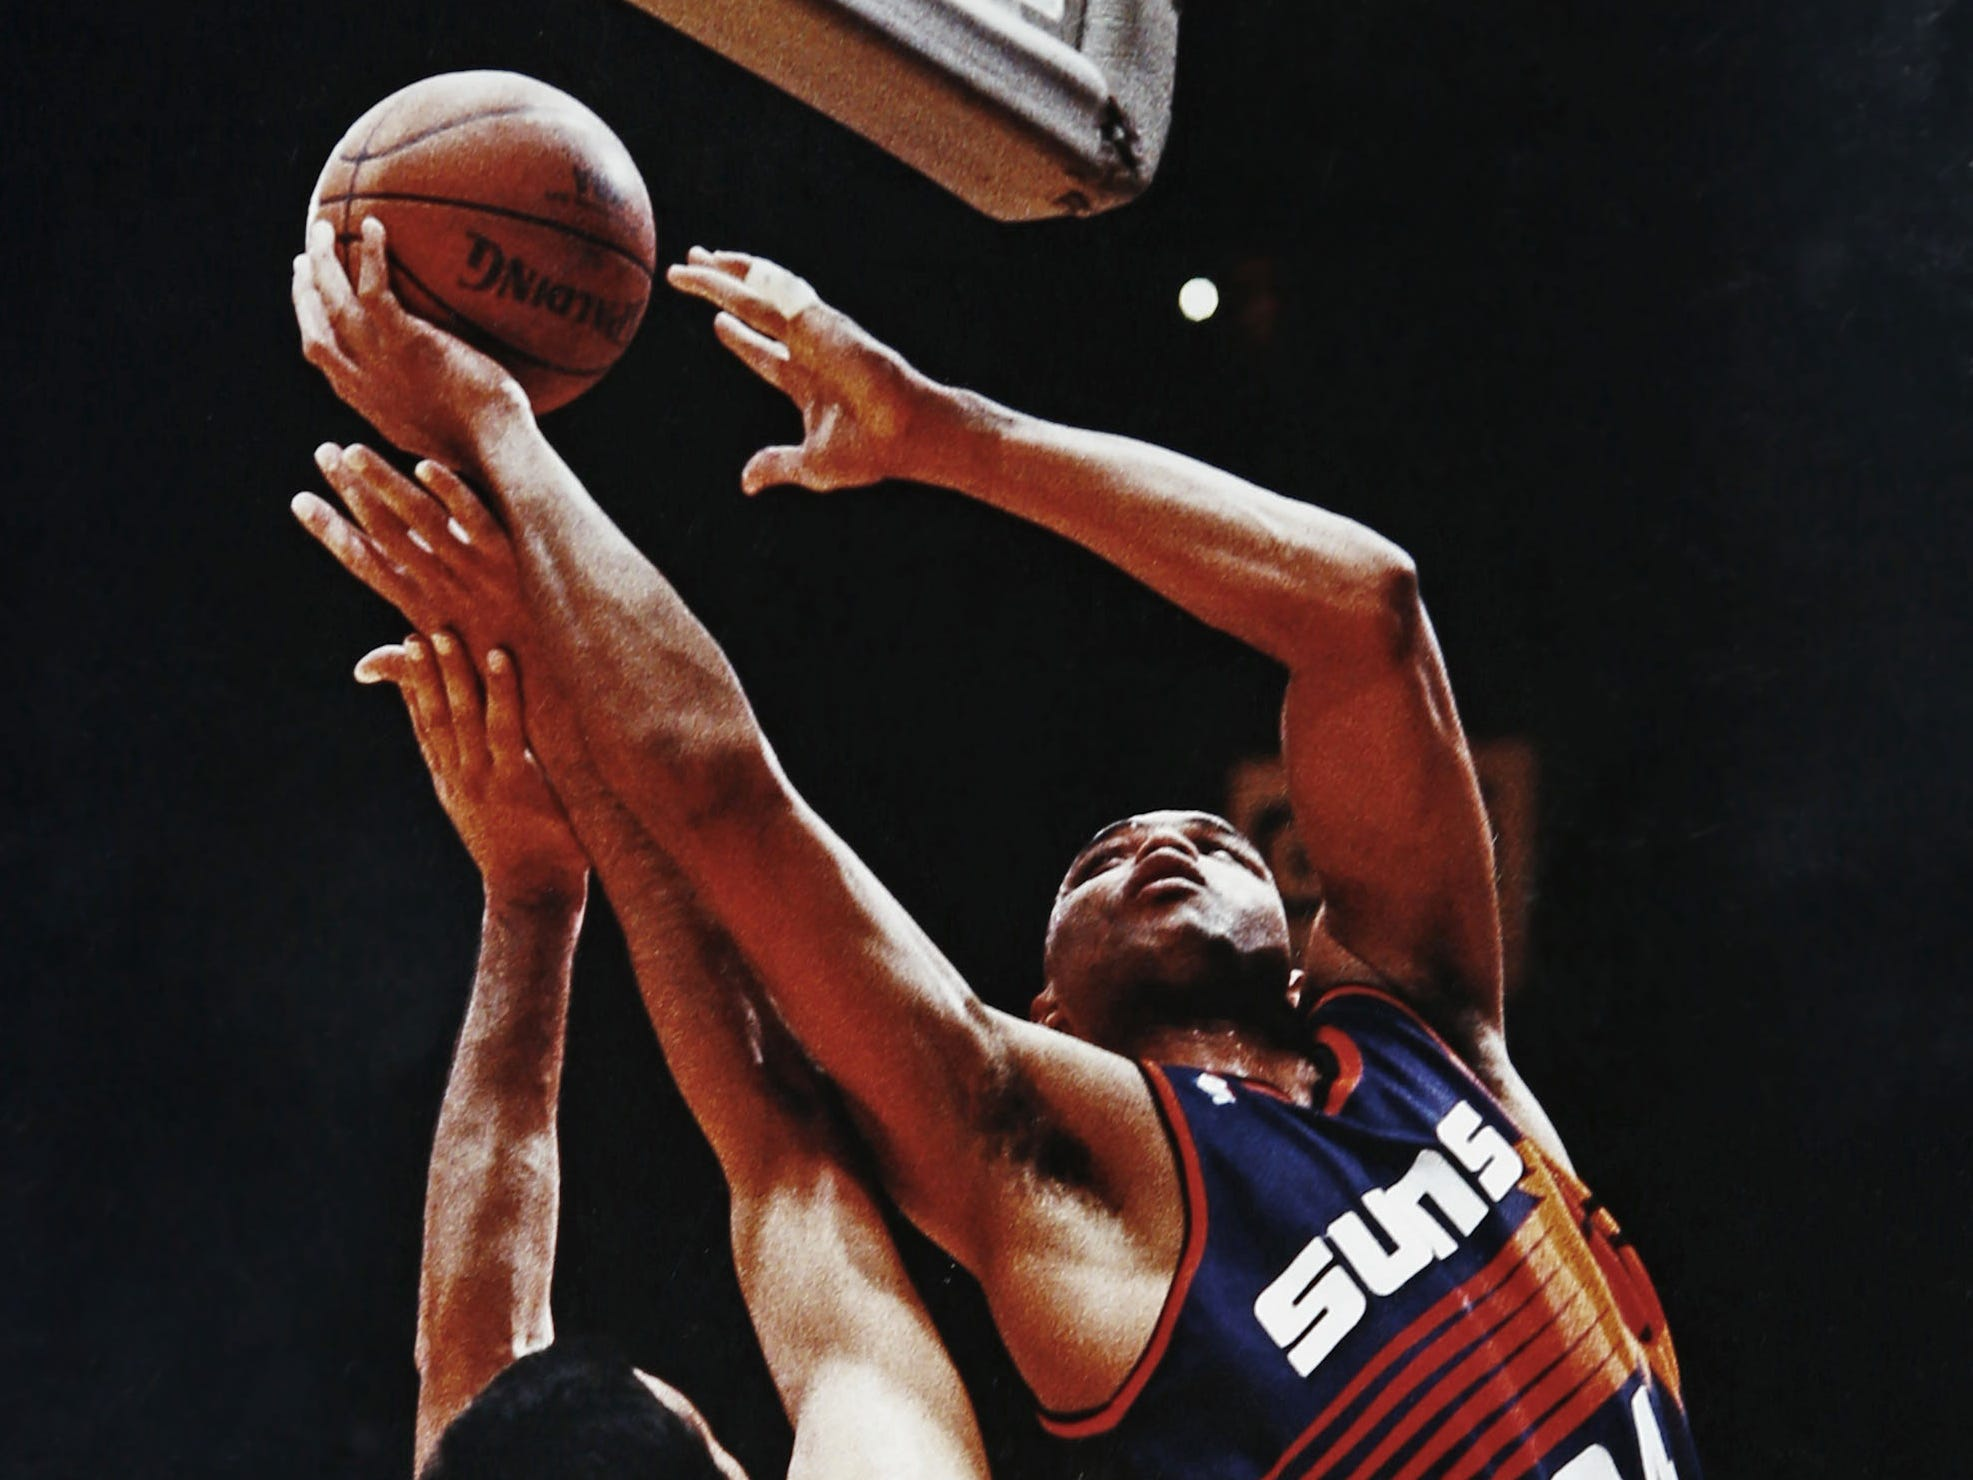 Charles Barkley scores over the Lakers' Vlade Divac during the 1993 NBA Playoffs in Los Angeles.